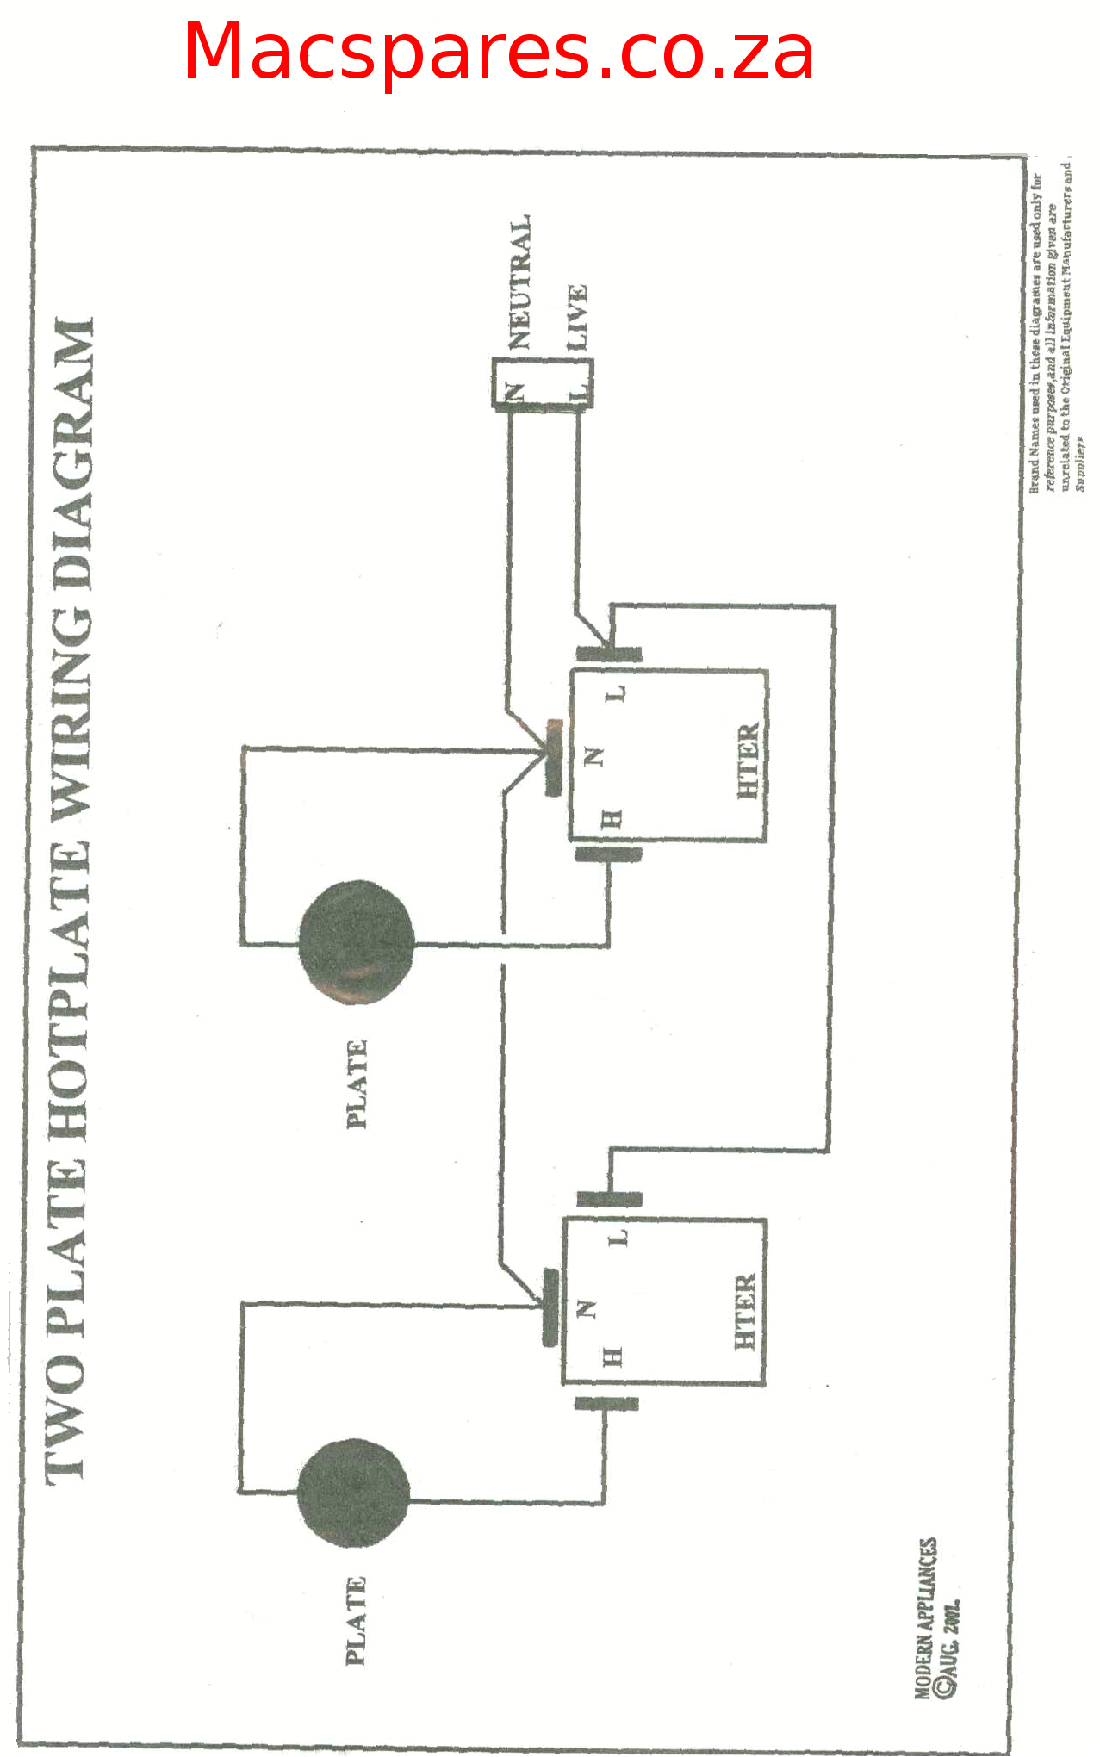 Stove Plate Wiring Diagram Wiring Diagrams Stoves Switches and thermostats Macspares